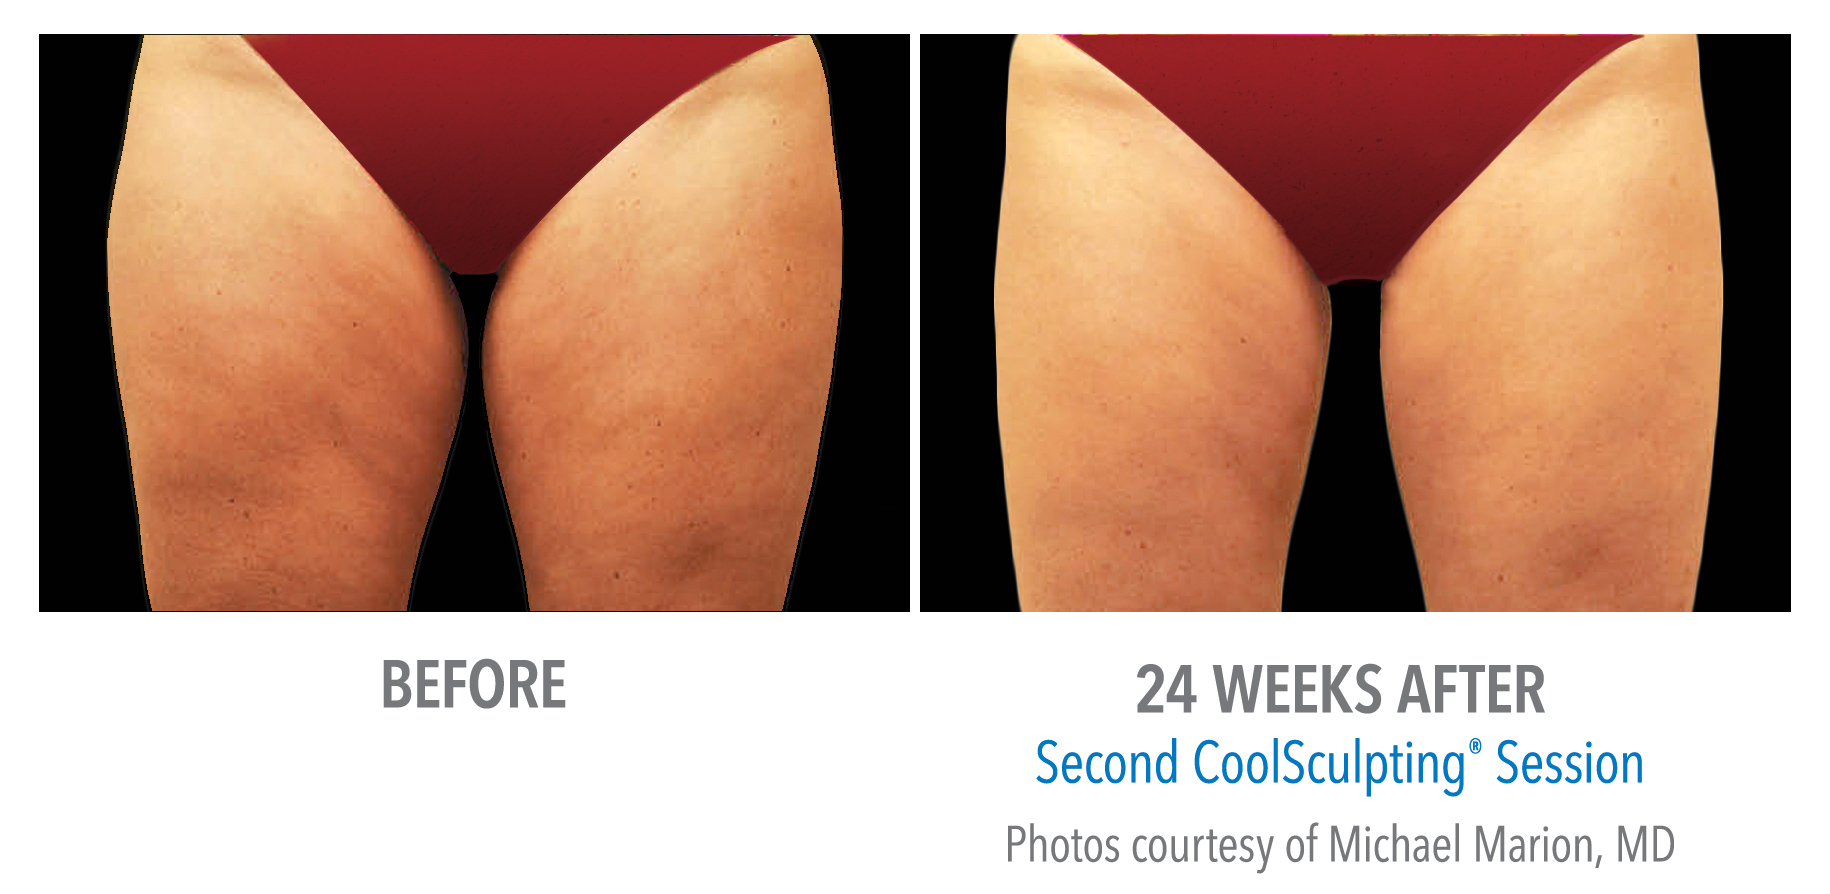 CoolSculpting inner thigh fat reduction before and after image